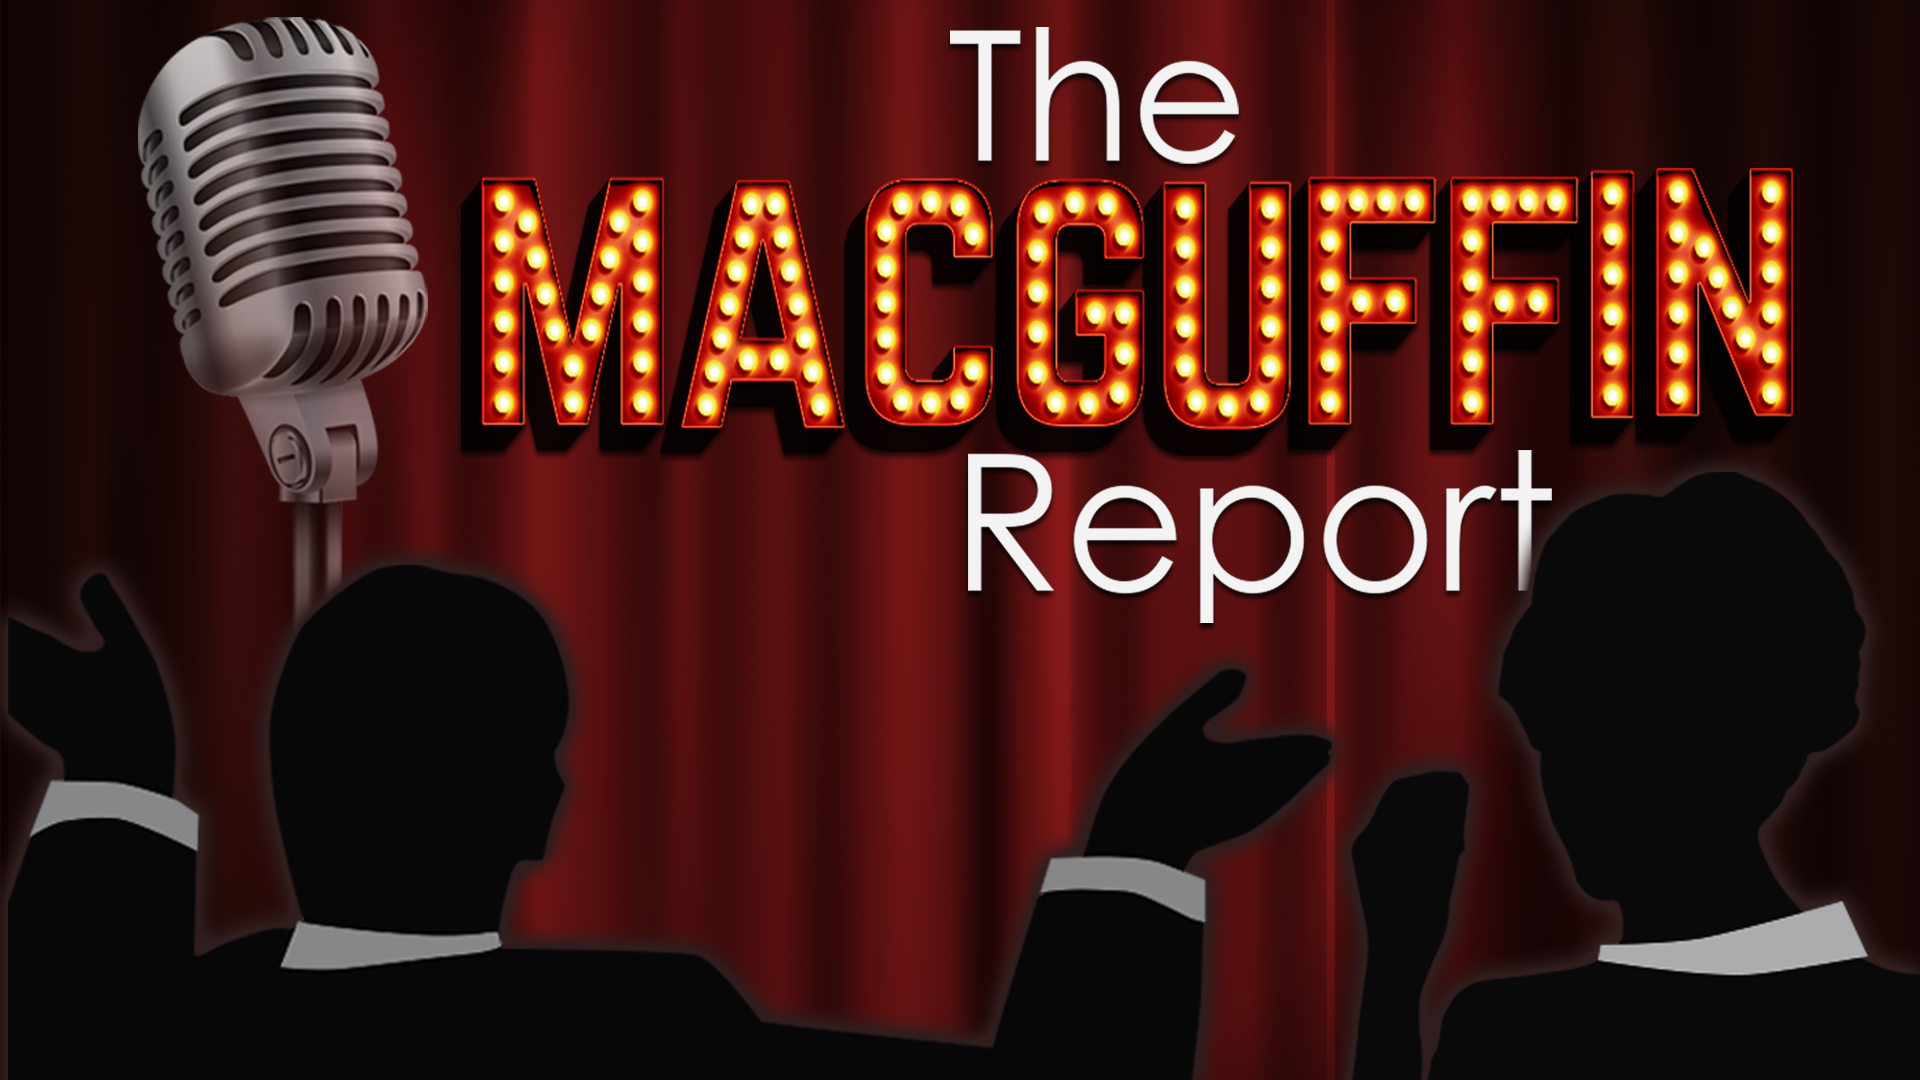 Available Now:The Macguffin report - Topical current event discussion on the entertainment industry - covering movies, TV and American culture from a rarely heard point of view. Featuring: Raechel Wong, Os Davis, and Walter Hong.Subscribe now on iTunes, Google Play, and Spotify.